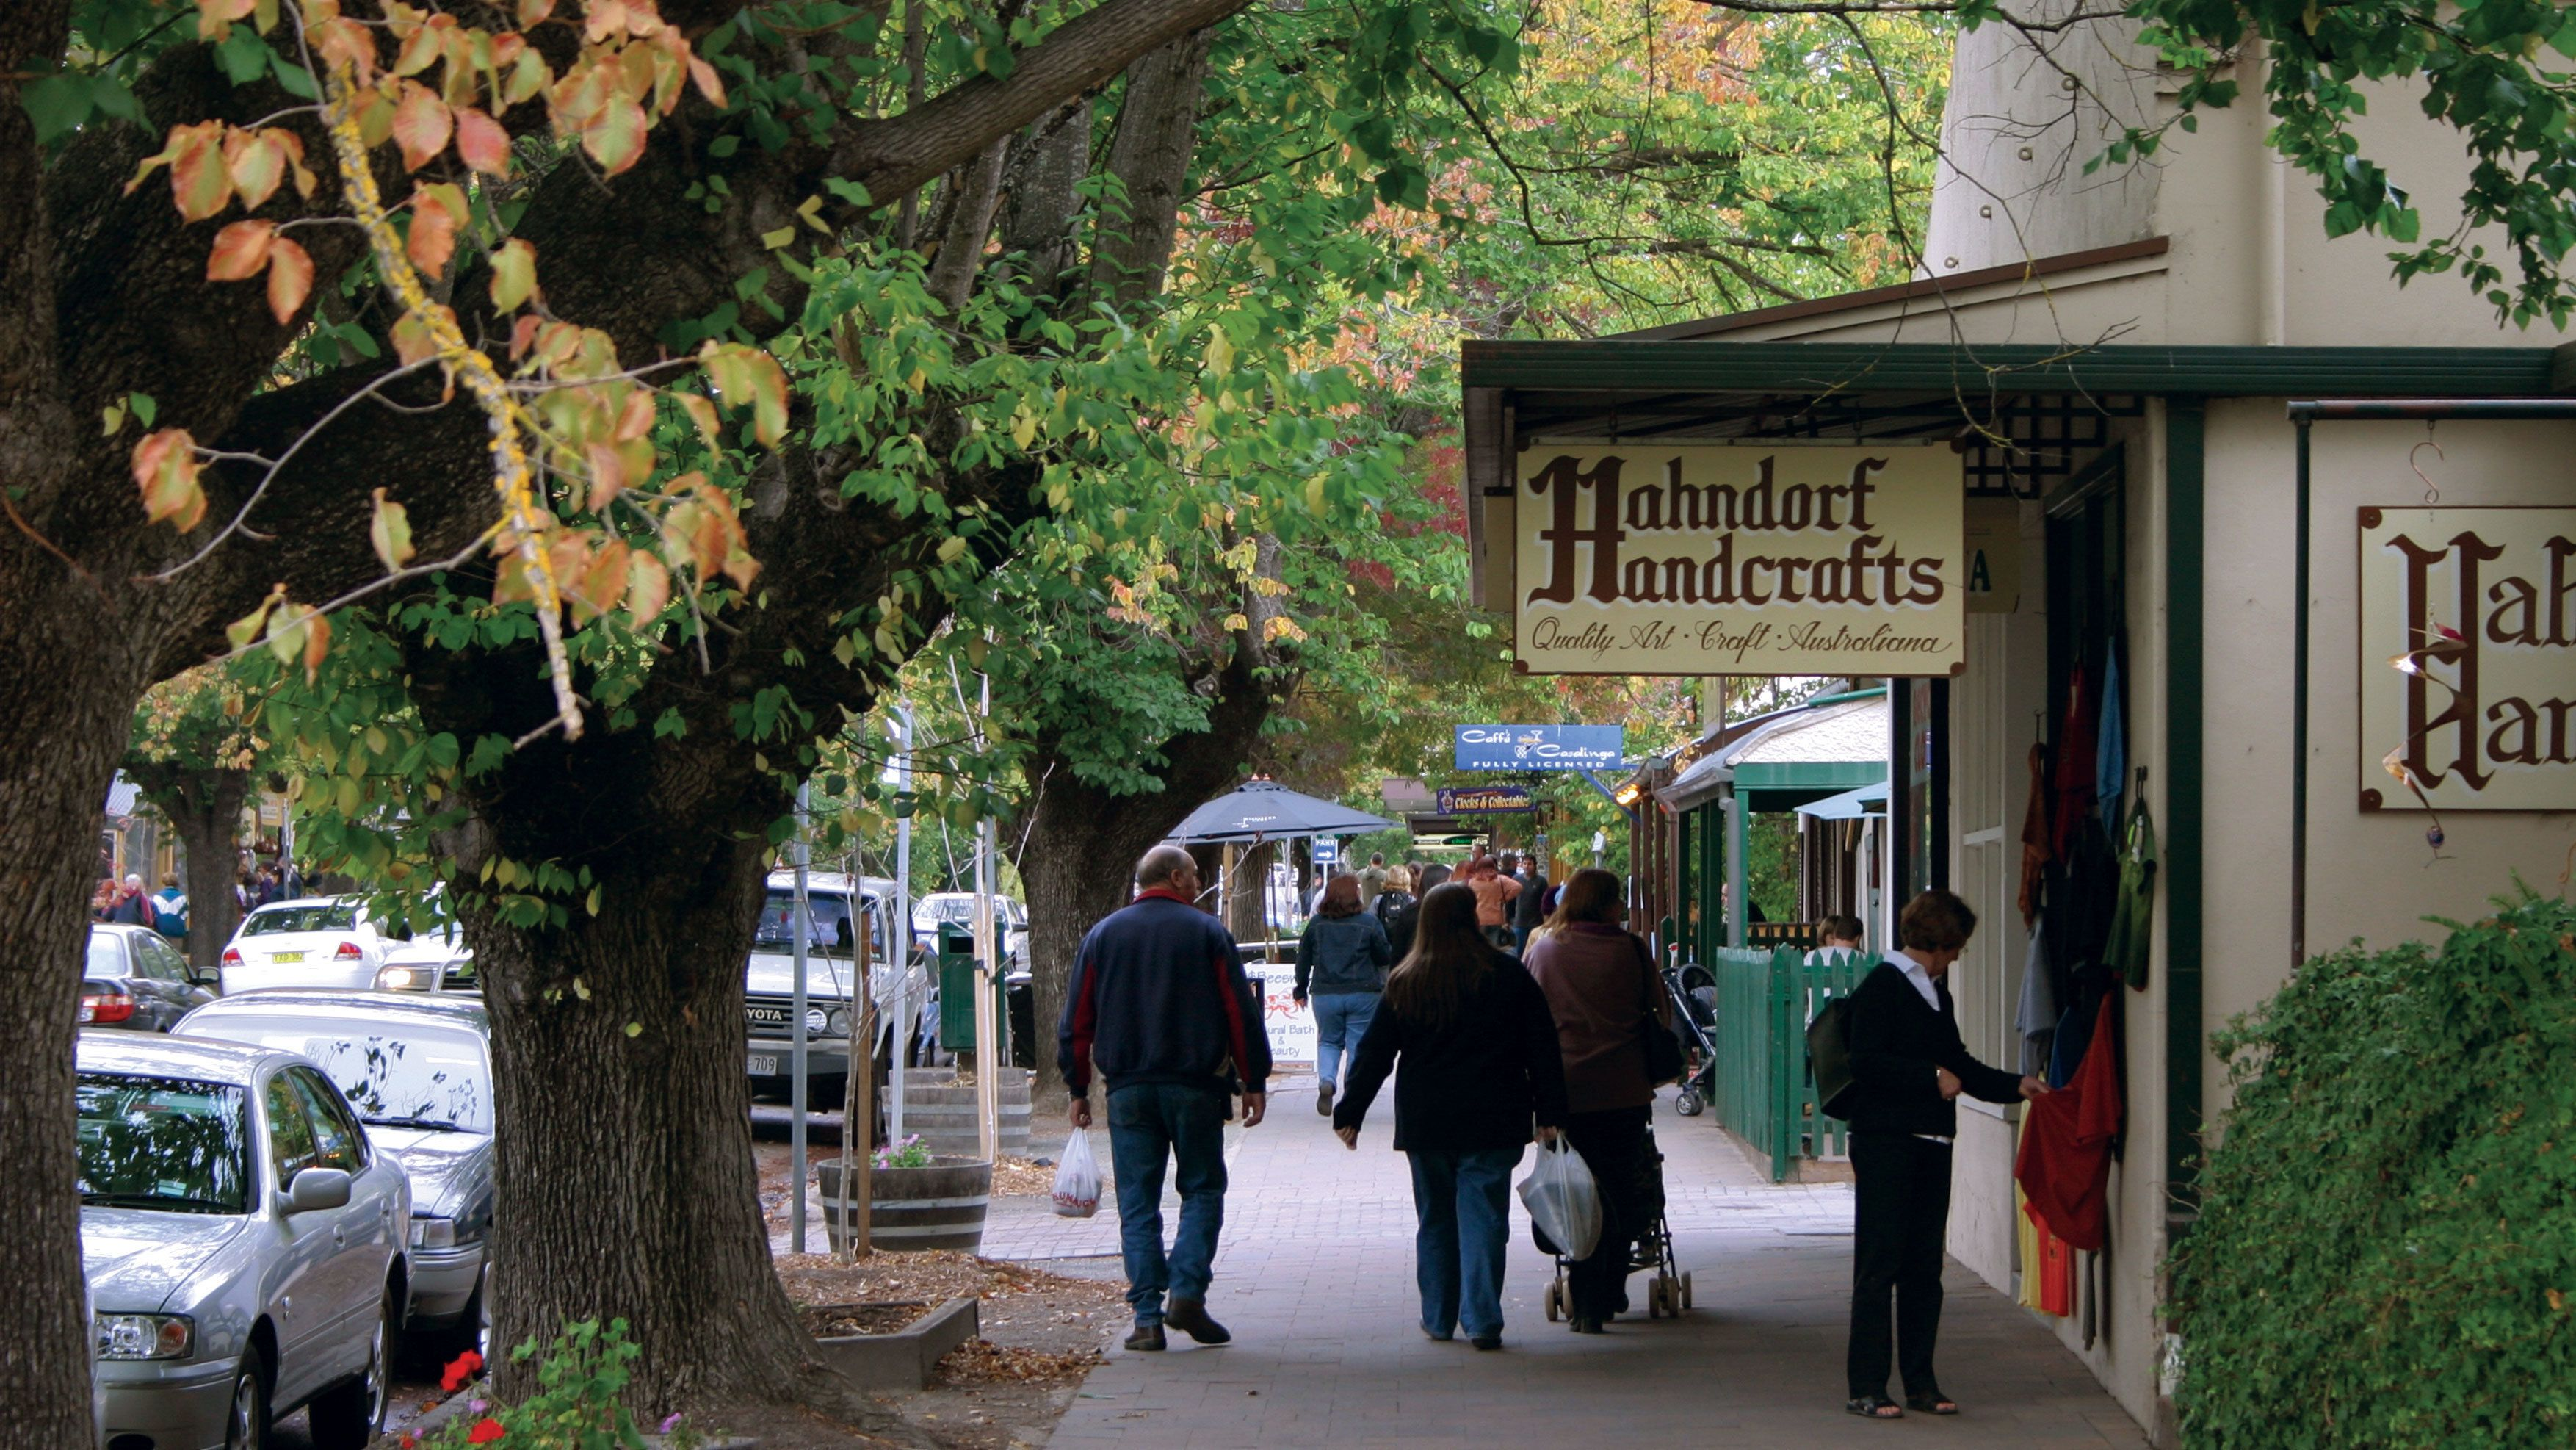 Shops and trees line the sidewalk in Hahndorf